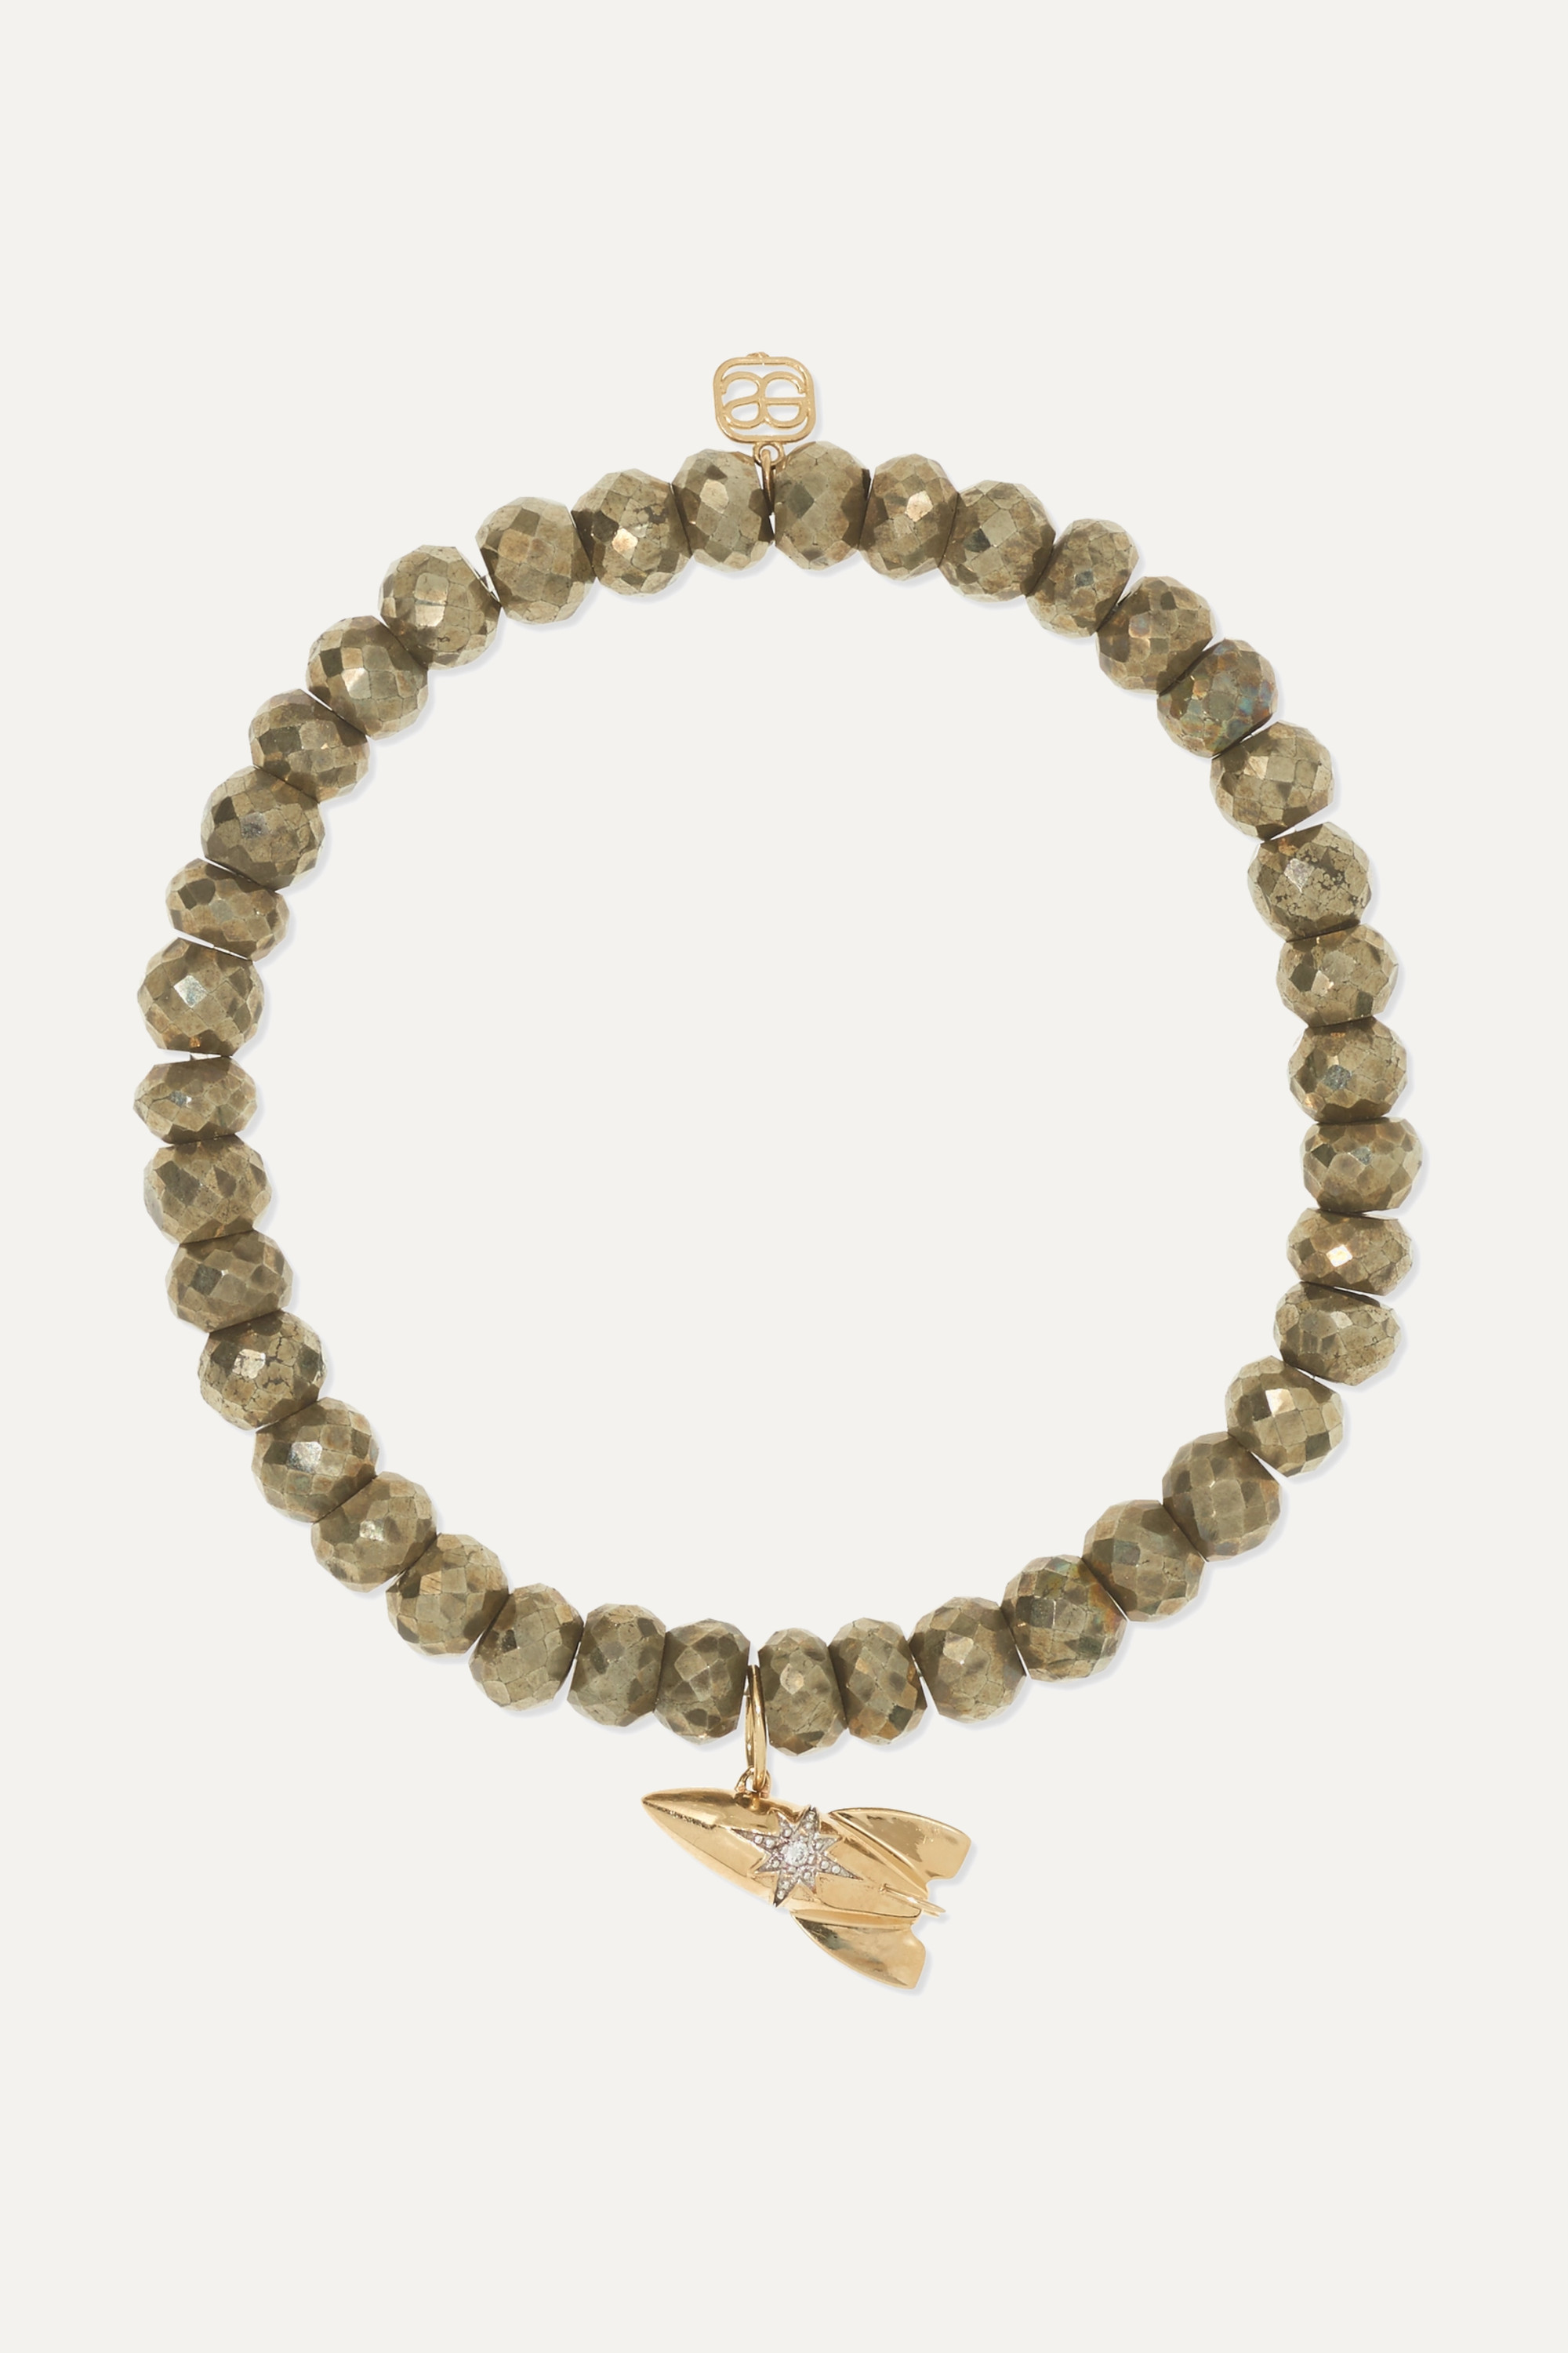 Sydney Evan Rocket 14-karat gold, pyrite and diamond bracelet